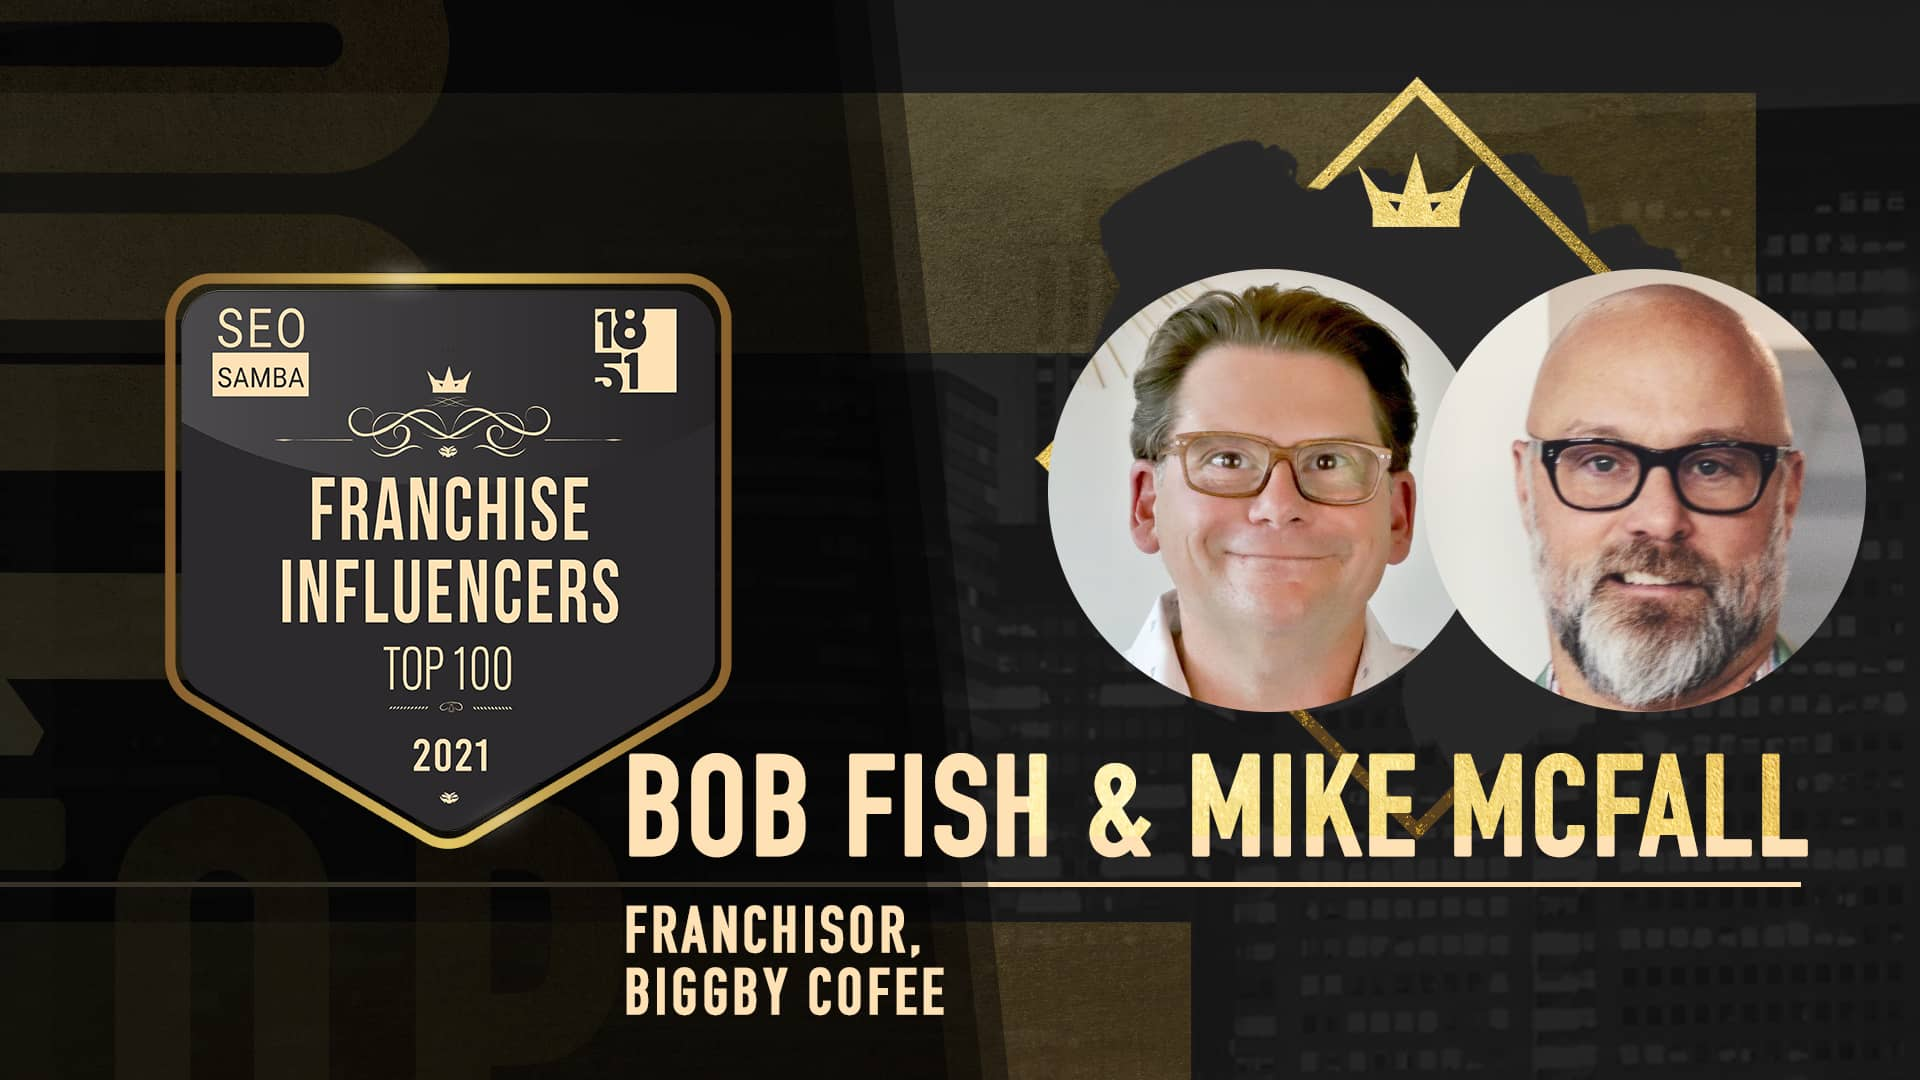 bob-fish-and-mike-mcfall-biggy-coffee